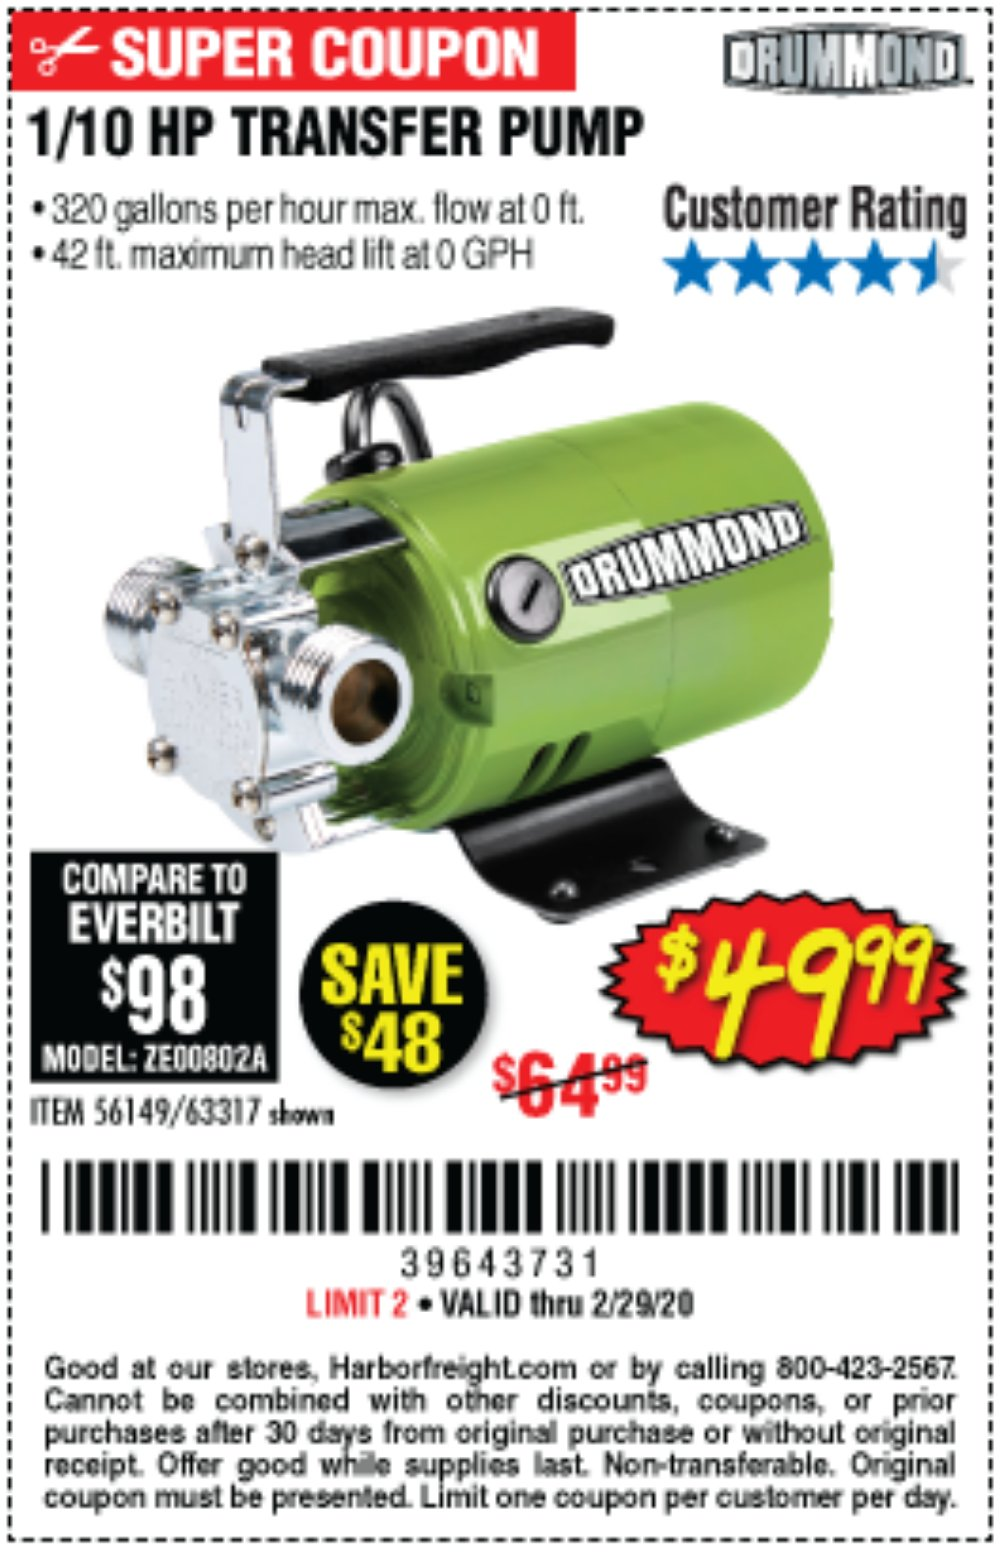 Harbor Freight Coupon, HF Coupons - 1/10 Hp Transfer Pump